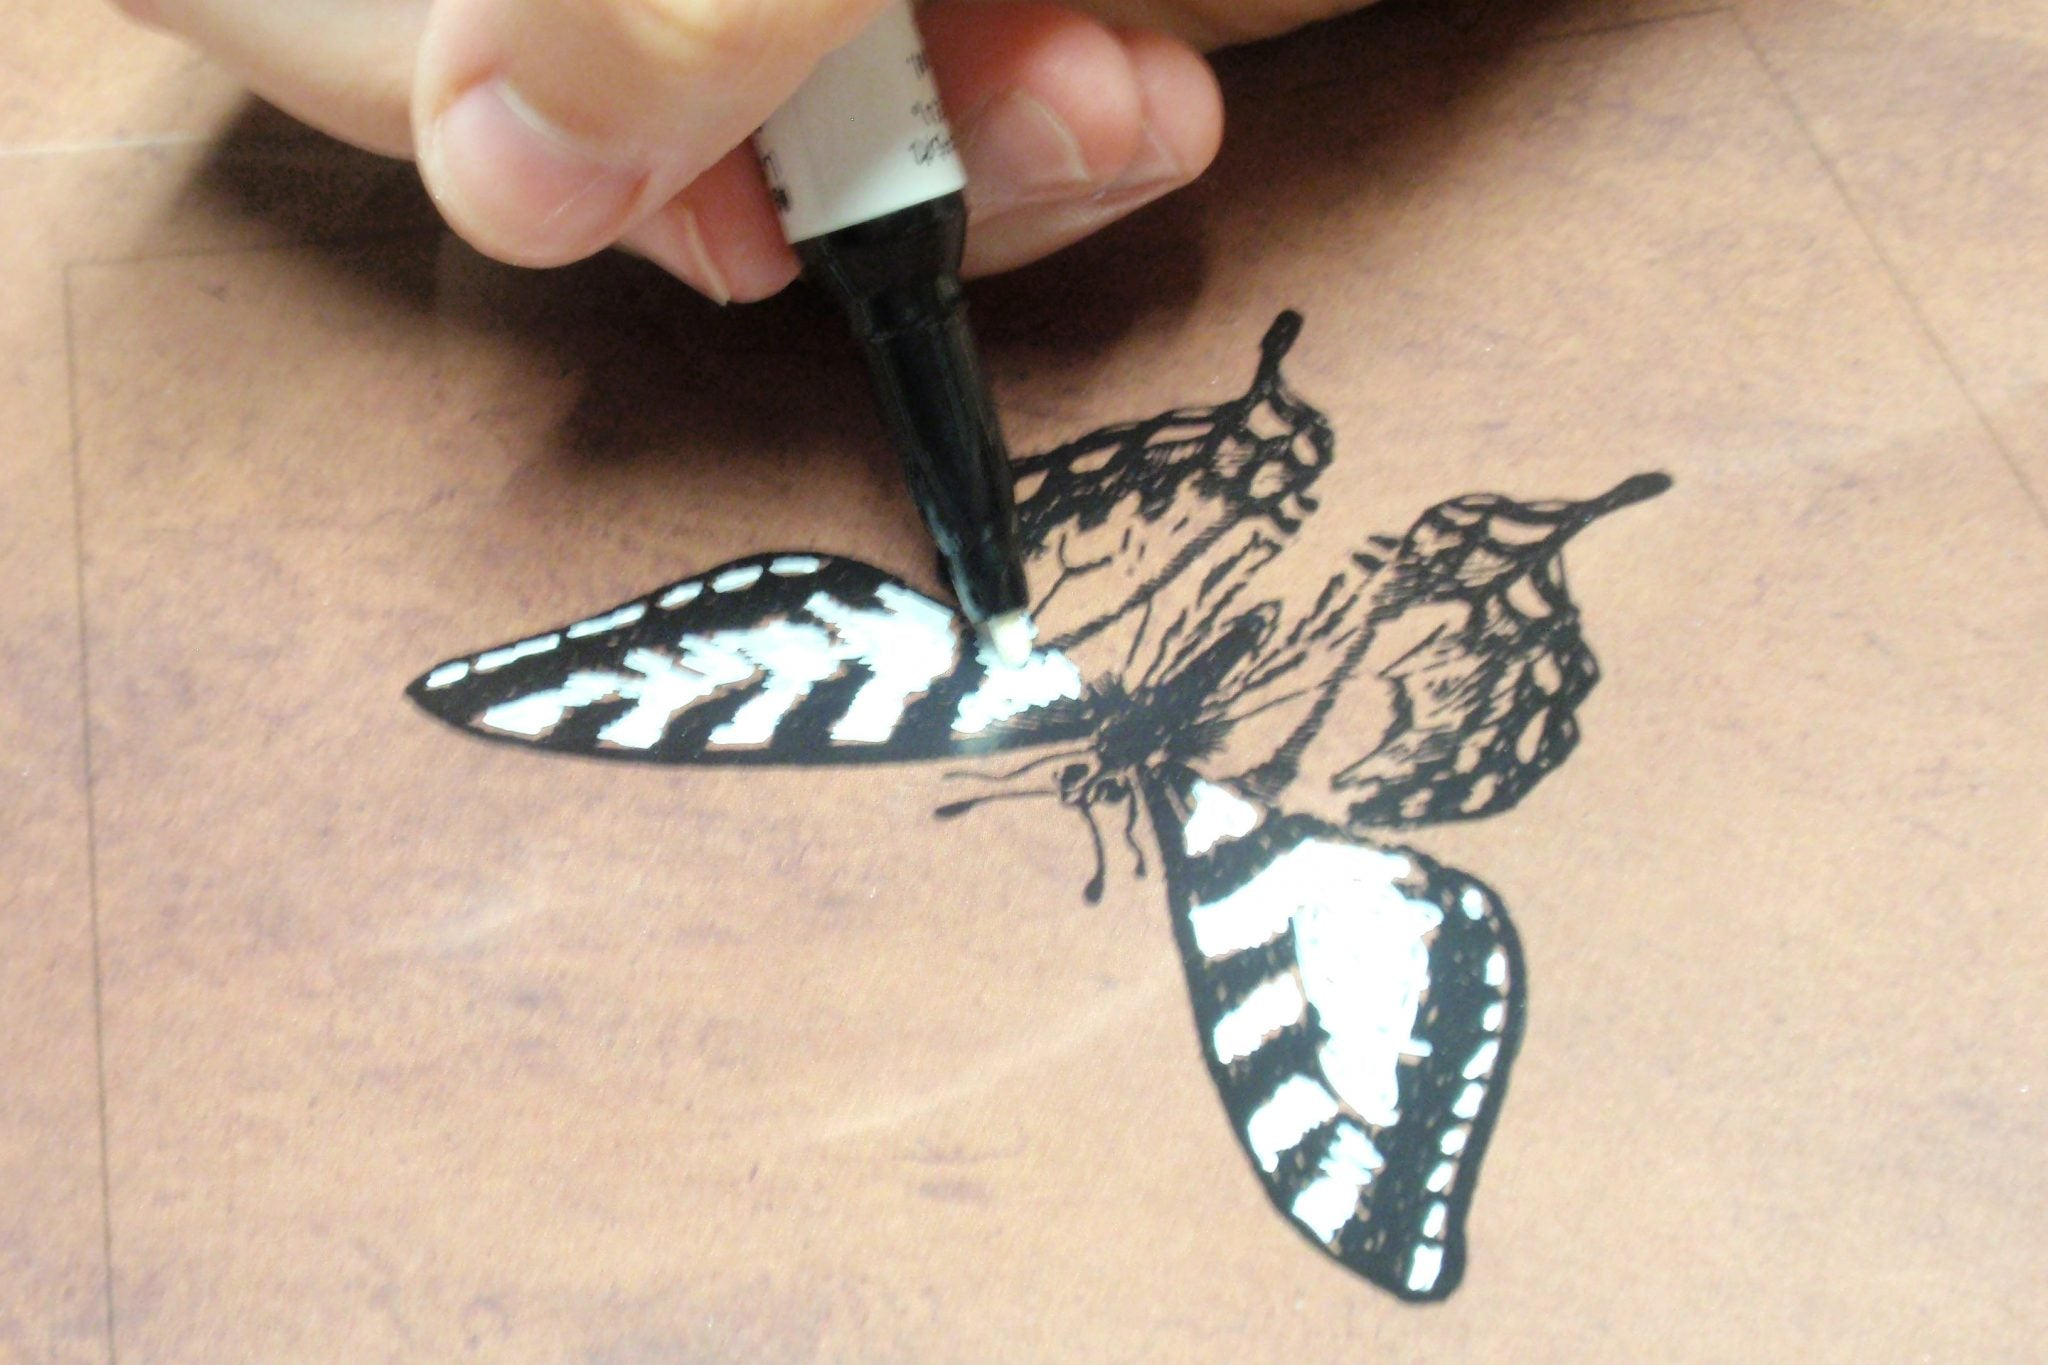 use white paint pen on back of insect